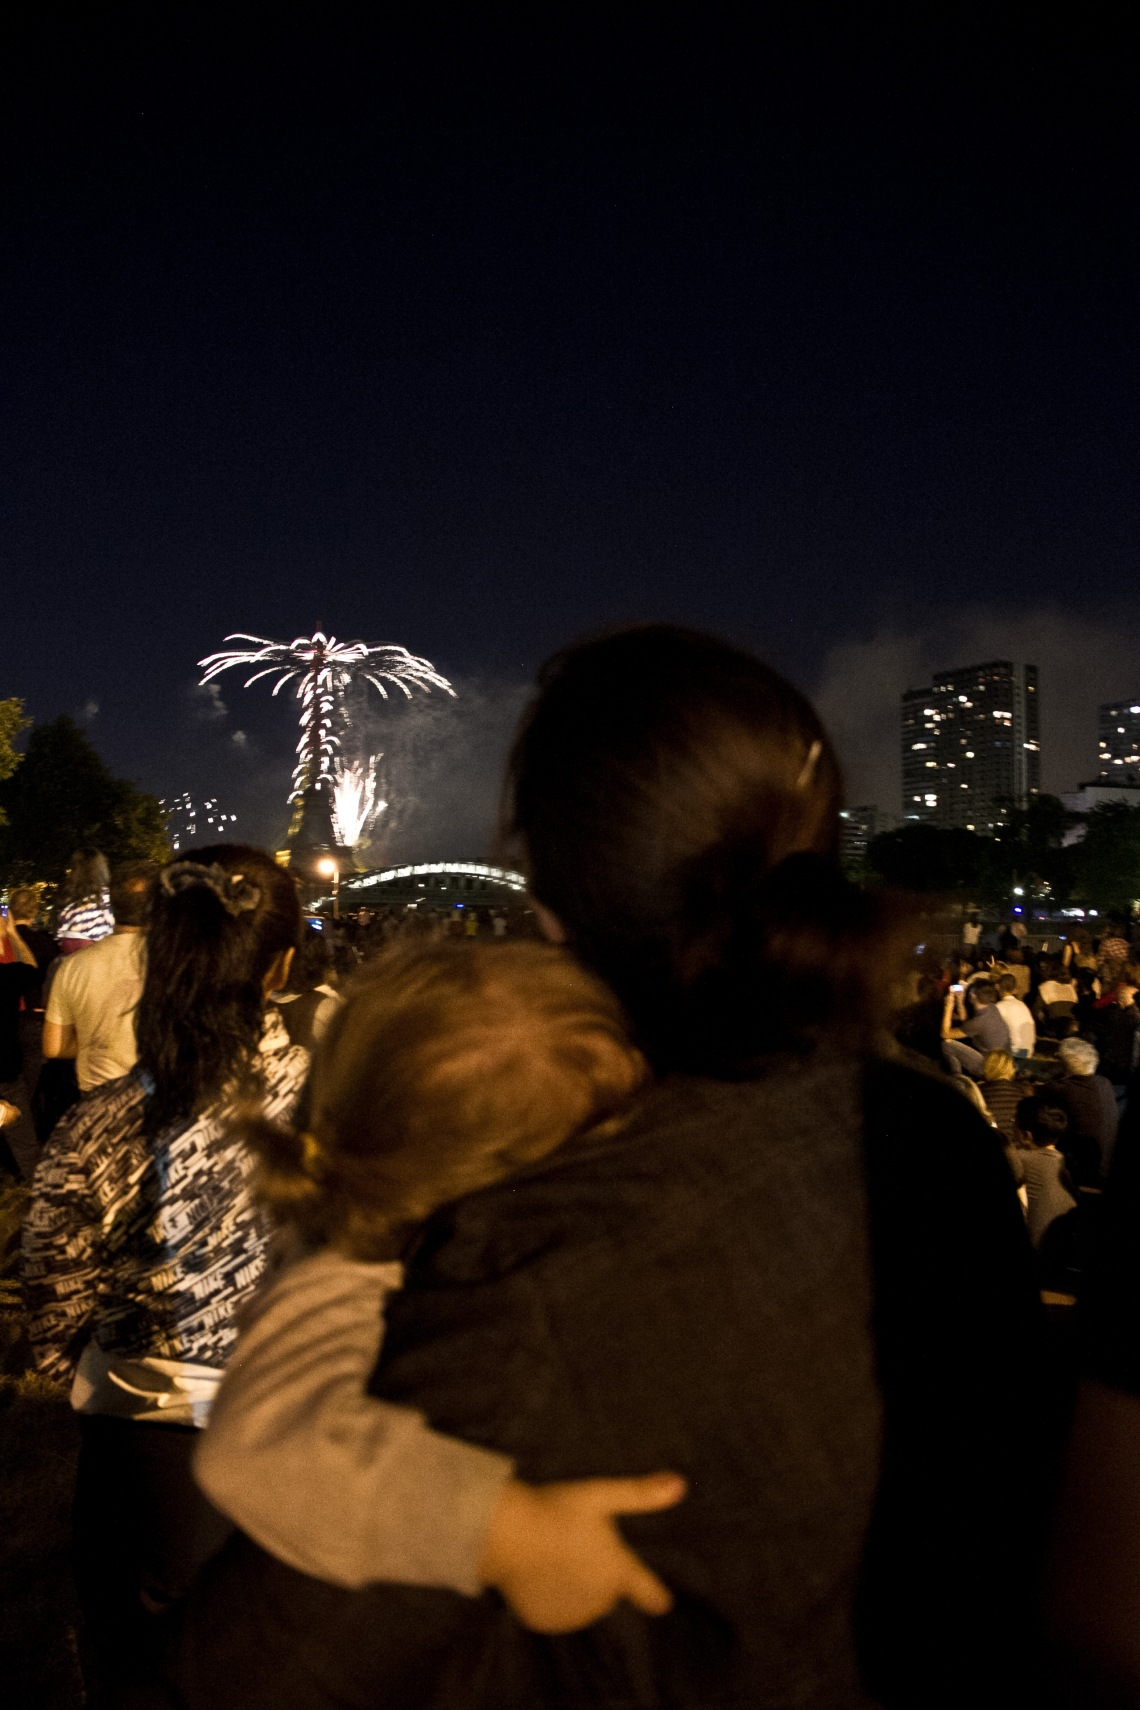 Feux d'artifice du 14 juillet 2015 Photo : André Lange-Médart